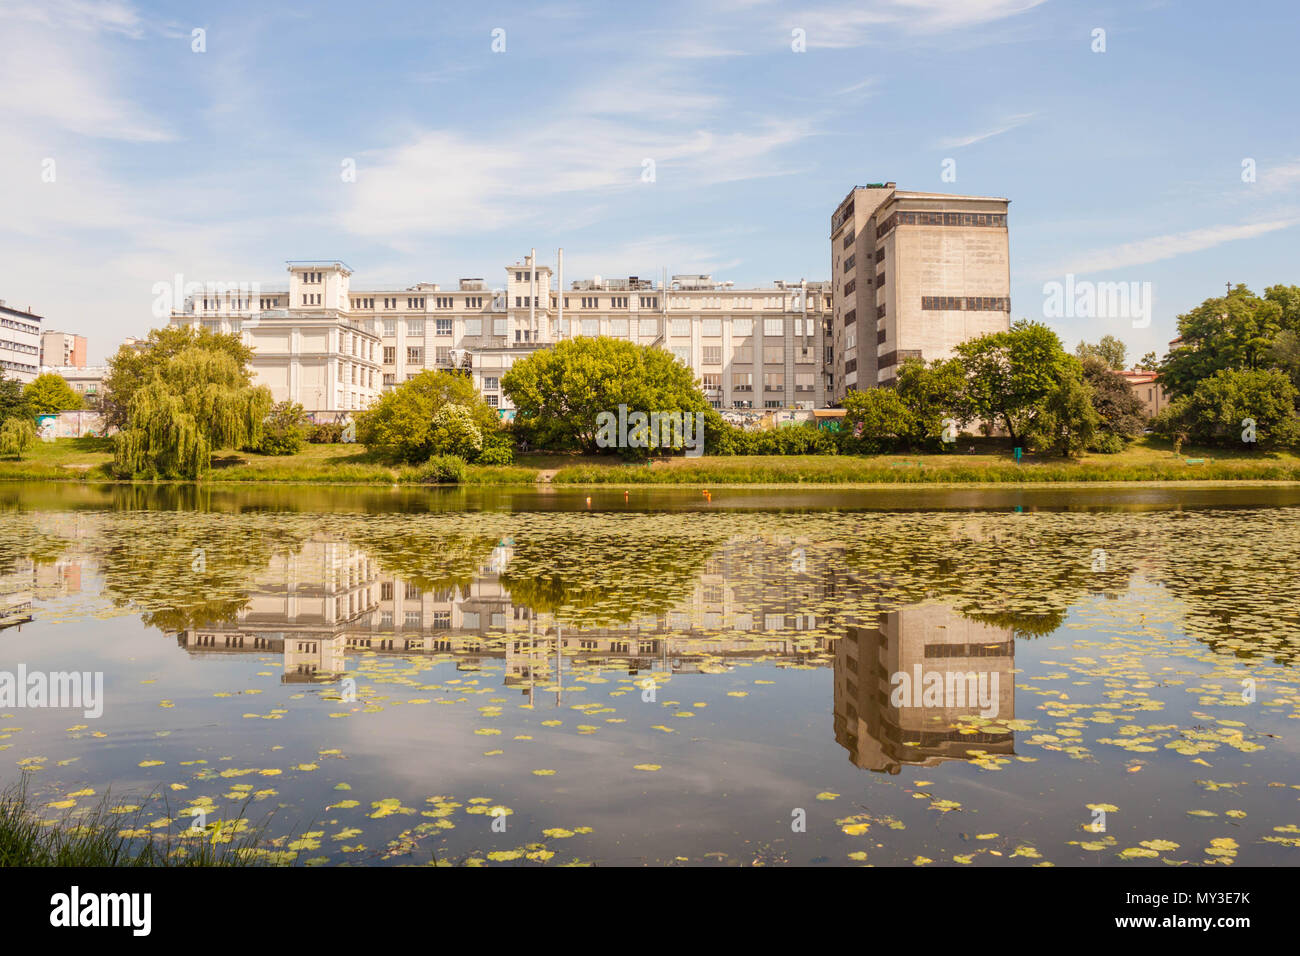 Warsaw, Poland - June 10, 2017: E.Wedel chocolate factory on Kamionkowskie lake in Praga district. The factory was opened in 1934 by Jan Wedel. - Stock Image